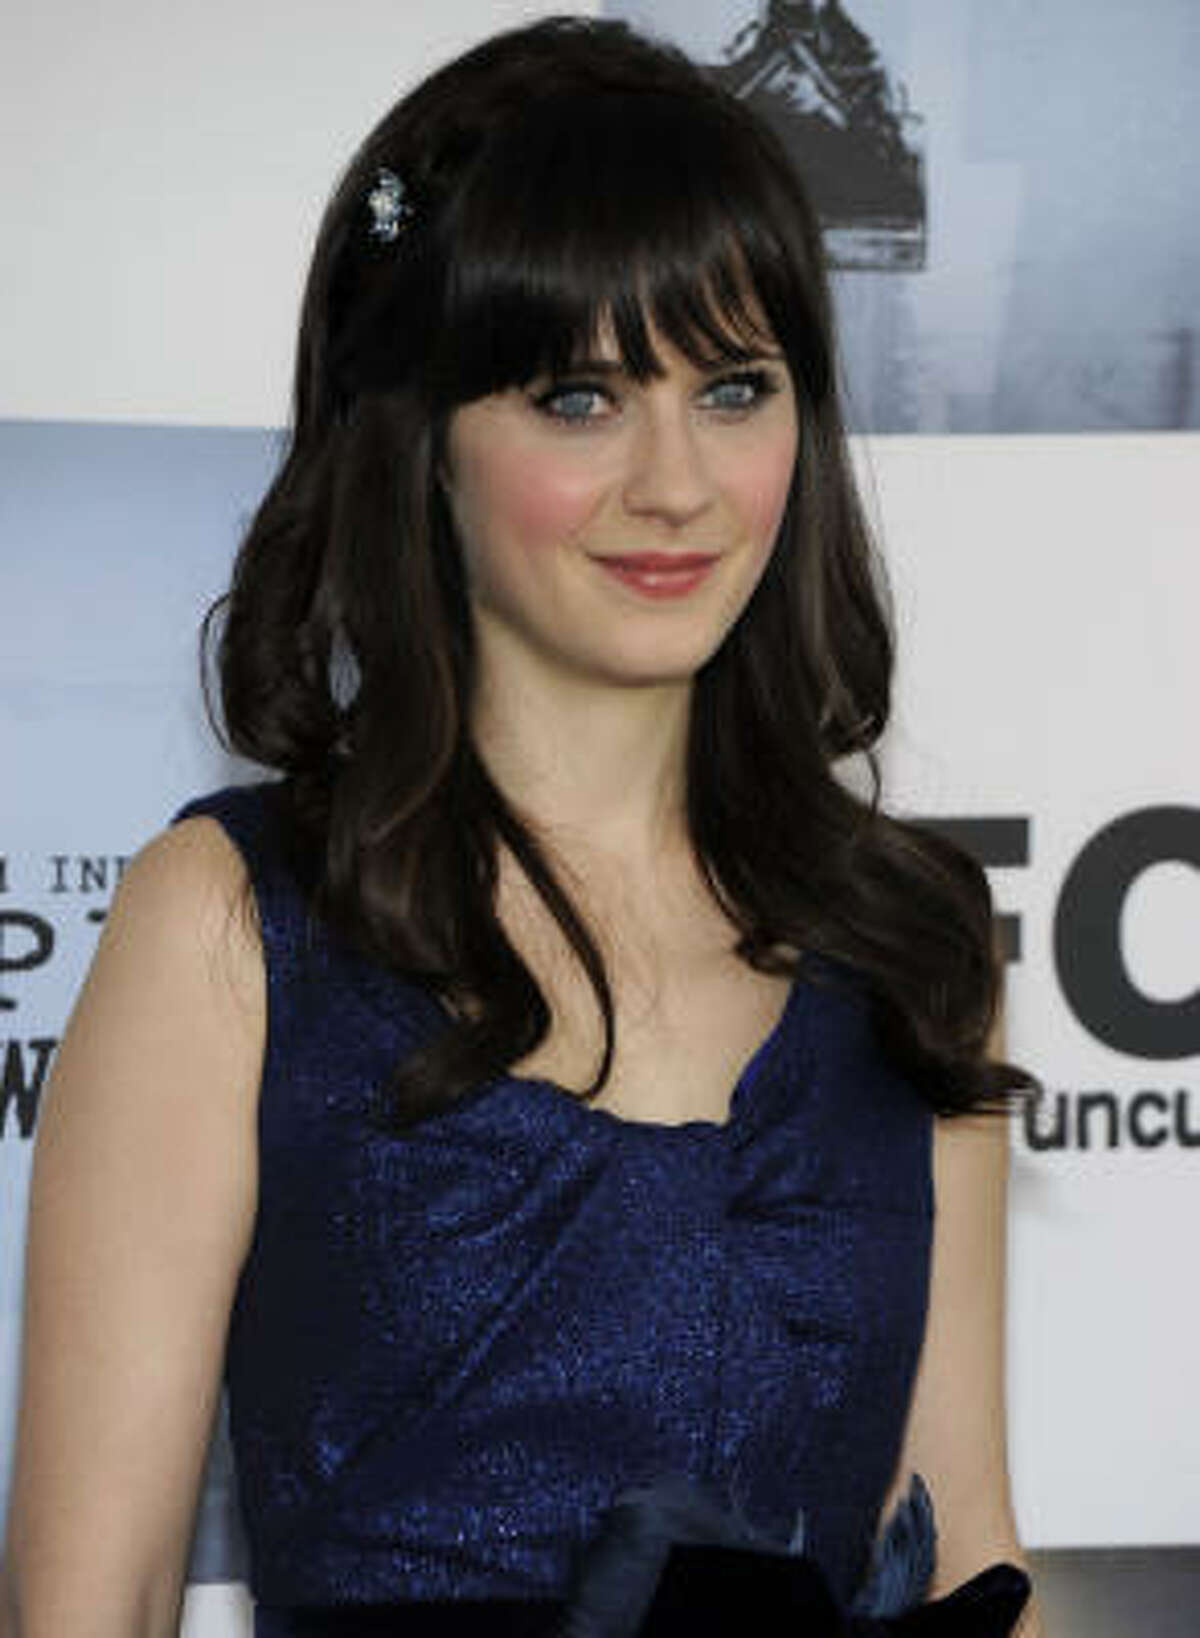 Like her sister, Emily, Zooey Deschanel has also been vegan for years. She recently appeared on an episode of Top Chef requesting a restricted vegan, gluten-free menu for a party.